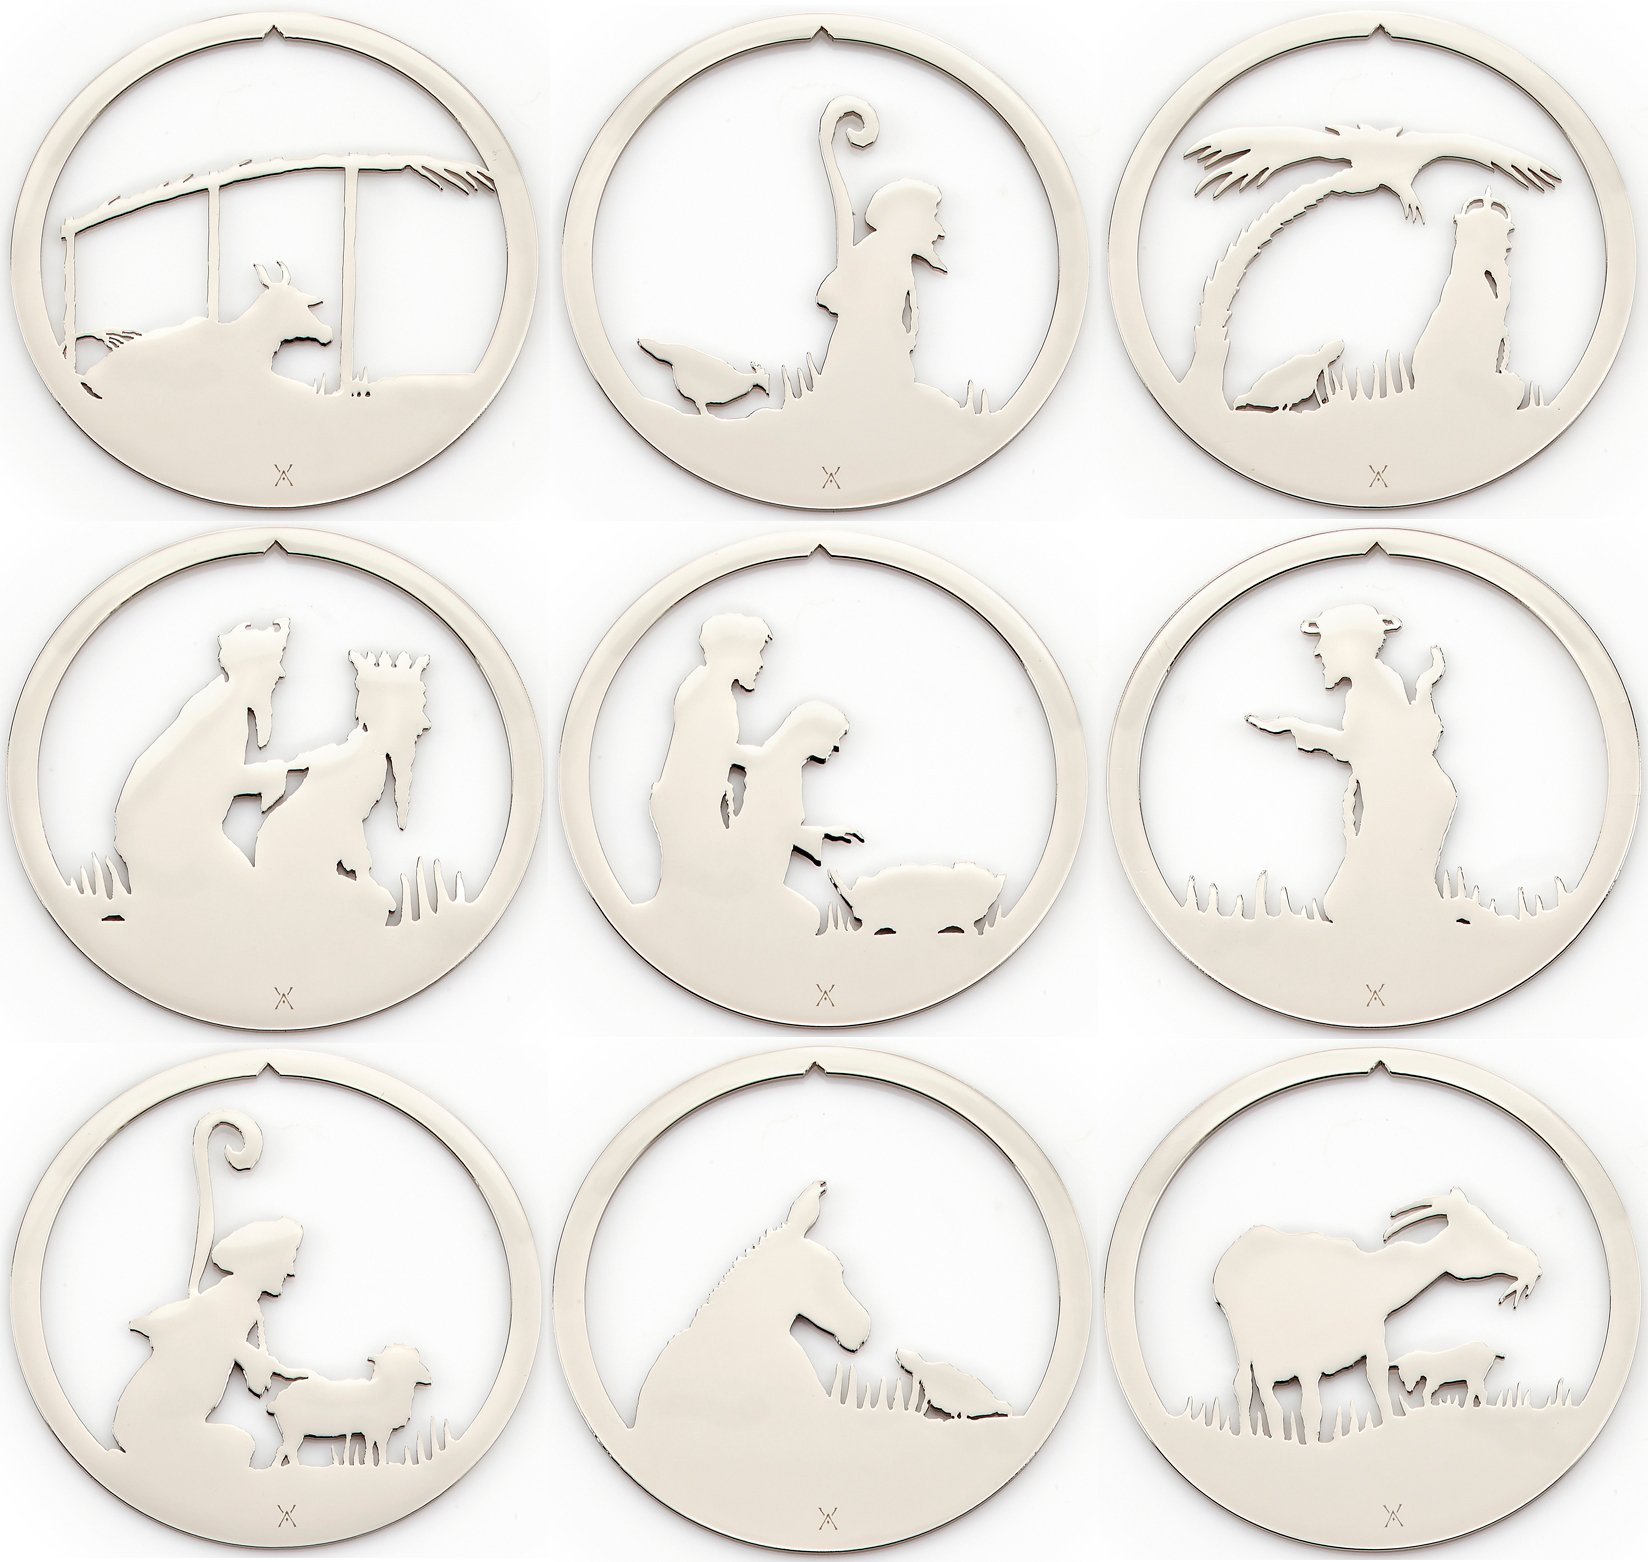 Nativity Boxed Ornament Set by Valerie Atkisson, Polished Nickel, 9 Pieces by Valerie Atkisson